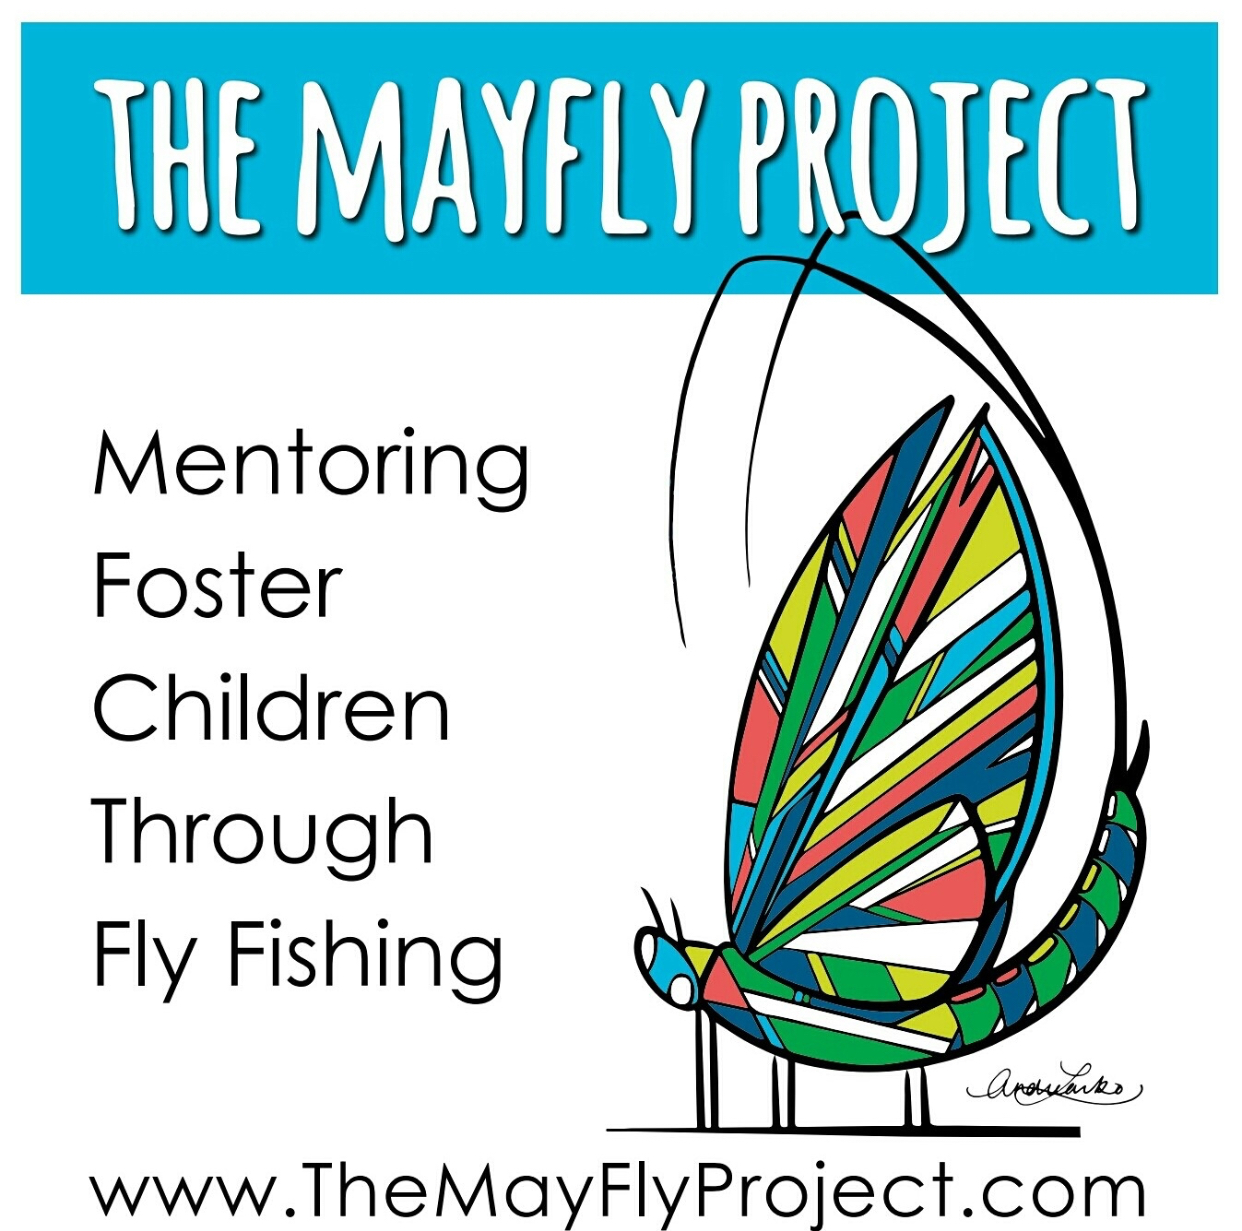 The Mayfly Project - The Mayfly Project is a 501(c) (3) organizetion that uses fly fishing as a catalyst to mentor children in foster care.Mission StatementOur mission is to build relationships with children in foster care through fly fishing and introduce them to their local water ecosystems, with a hope that connecting them to a rewarding hobby will provide an opportunity for foster children to have fun, feel supported, and develop a meaningful connection with the outdoors.http://themayflyproject.com